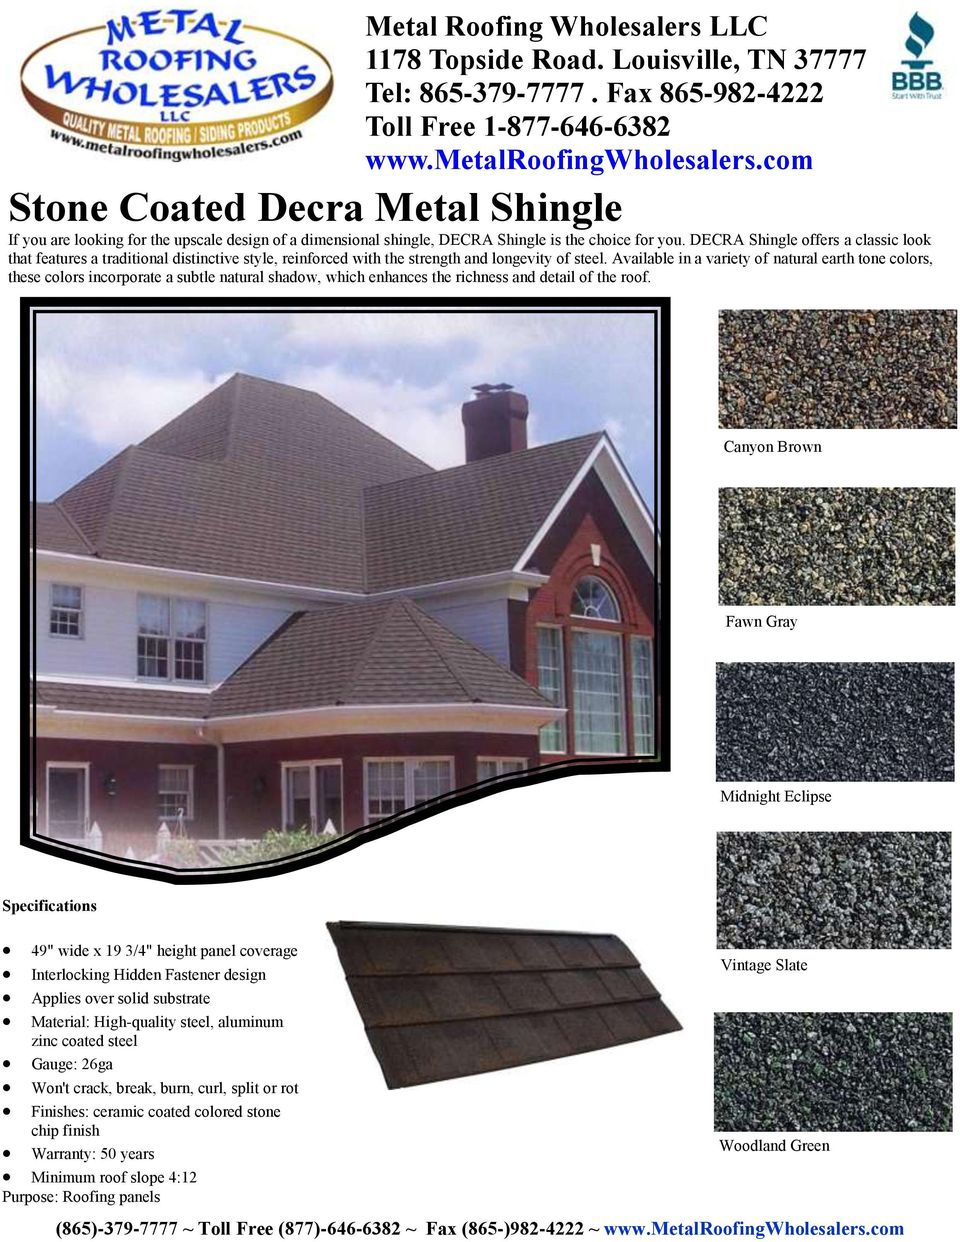 Available in a variety of natural earth tone colors, these colors incorporate a subtle natural shadow, which enhances the richness and detail of the roof.